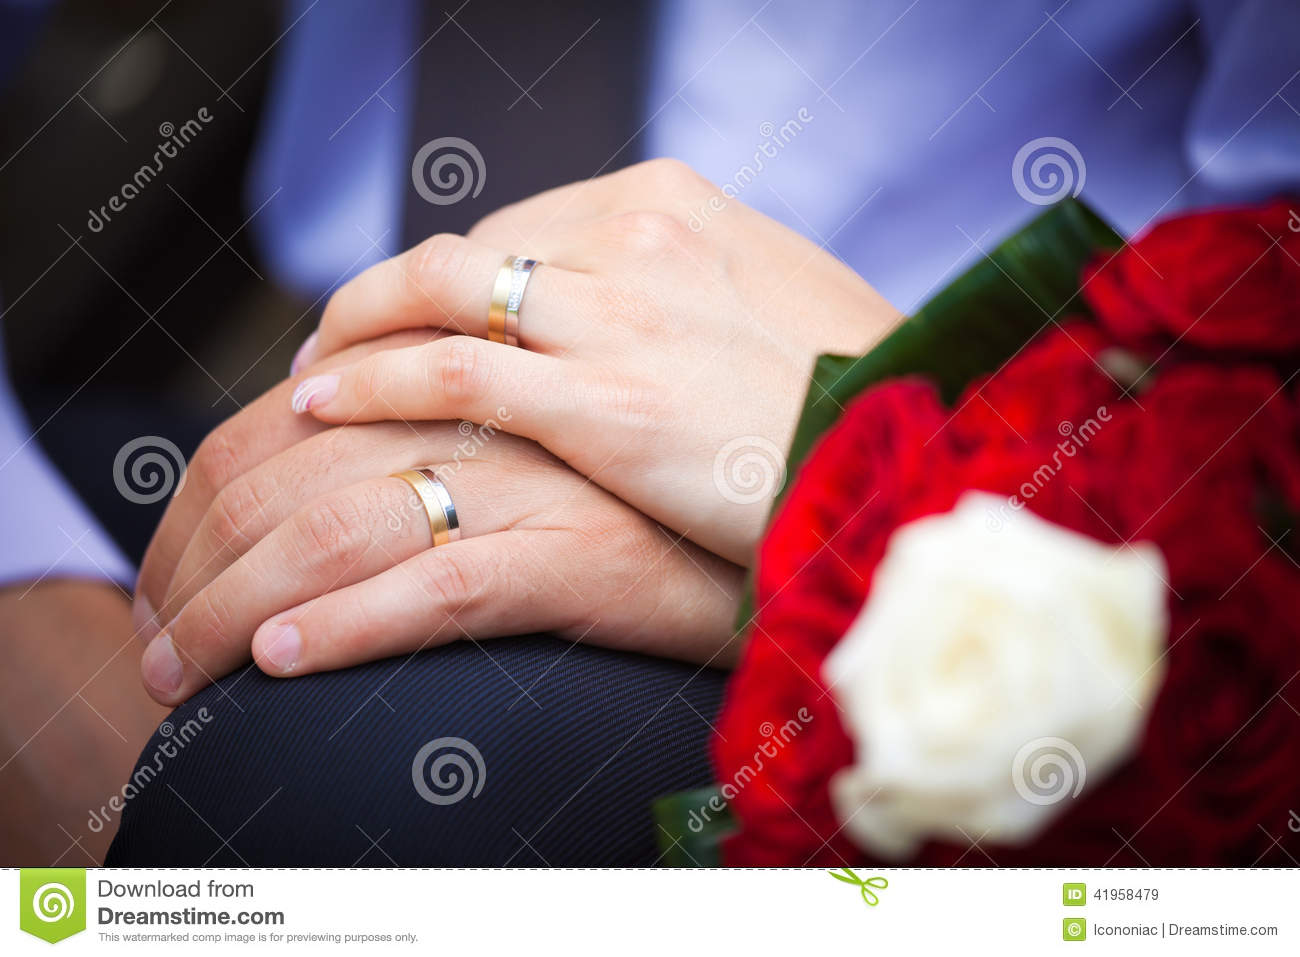 Husband Wife Hands Showing Engagement Ring Stock Images - 63 Photos